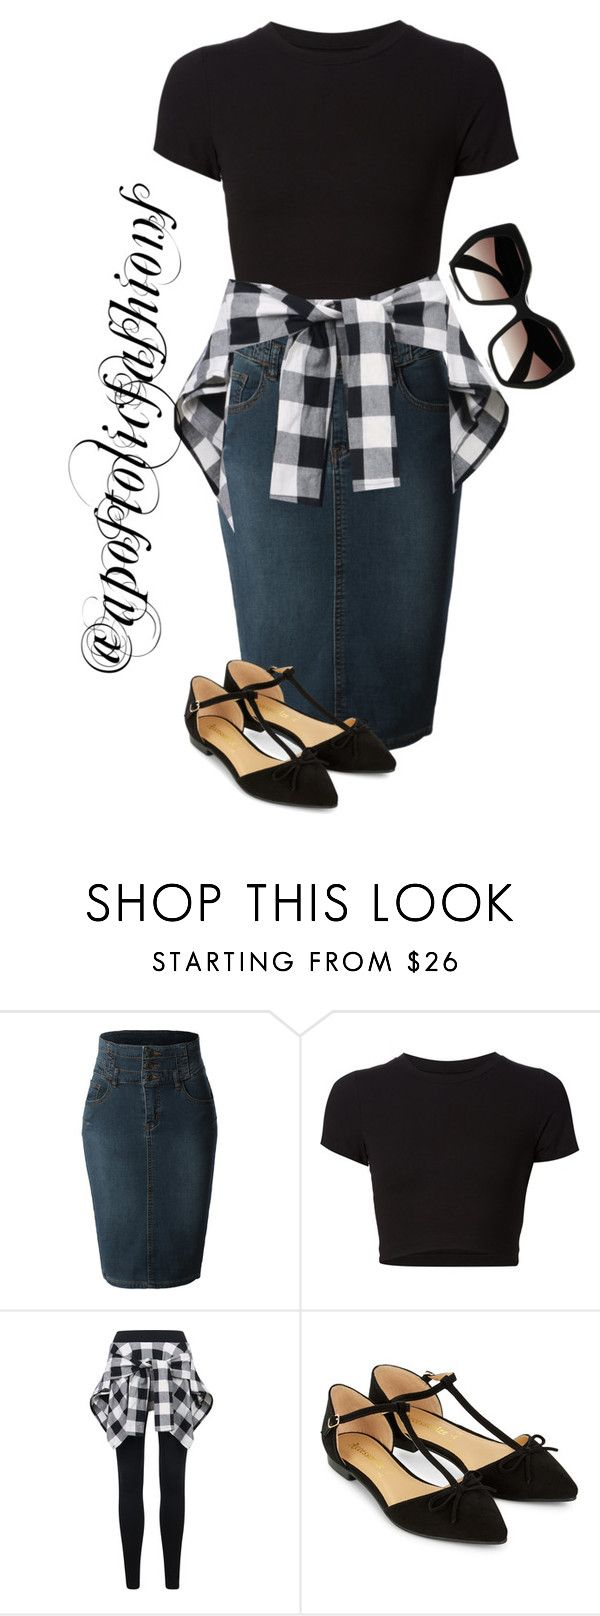 """Apostolic Fashions #1325"" by apostolicfashions ❤ liked on Polyvore featuring LE3NO, Getting Back To Square One, Accessorize, Prada, modestlykay and modestlywhit"